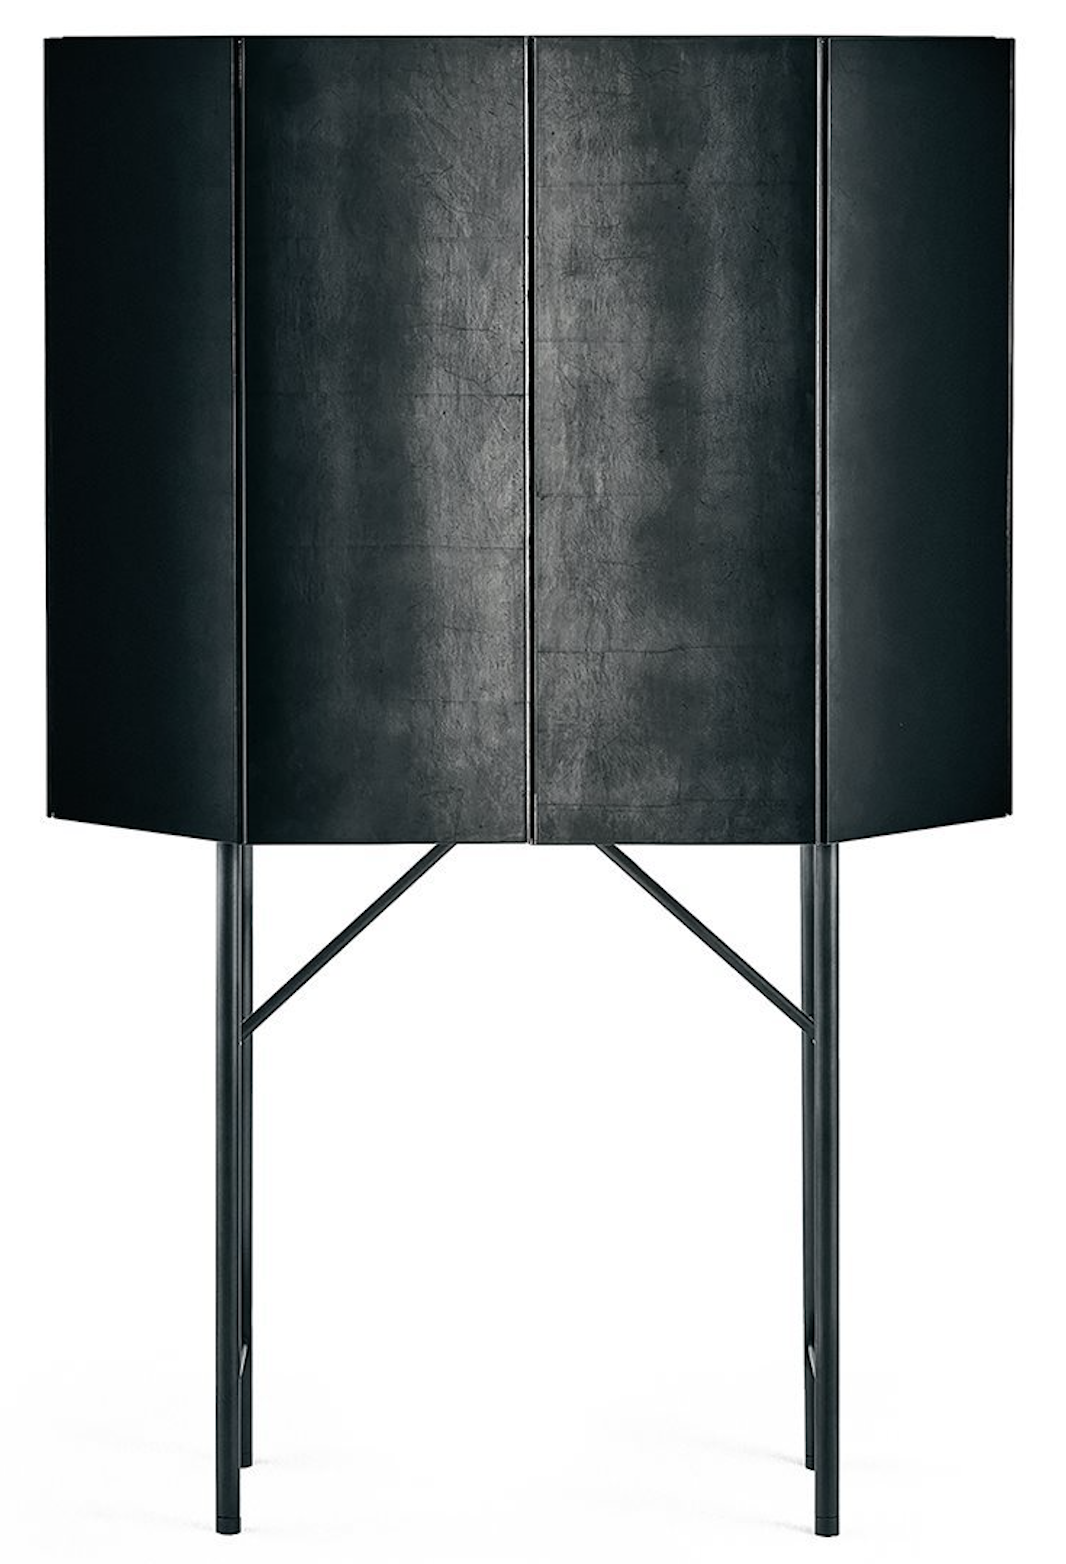 Product Image misty venice bar cabinet